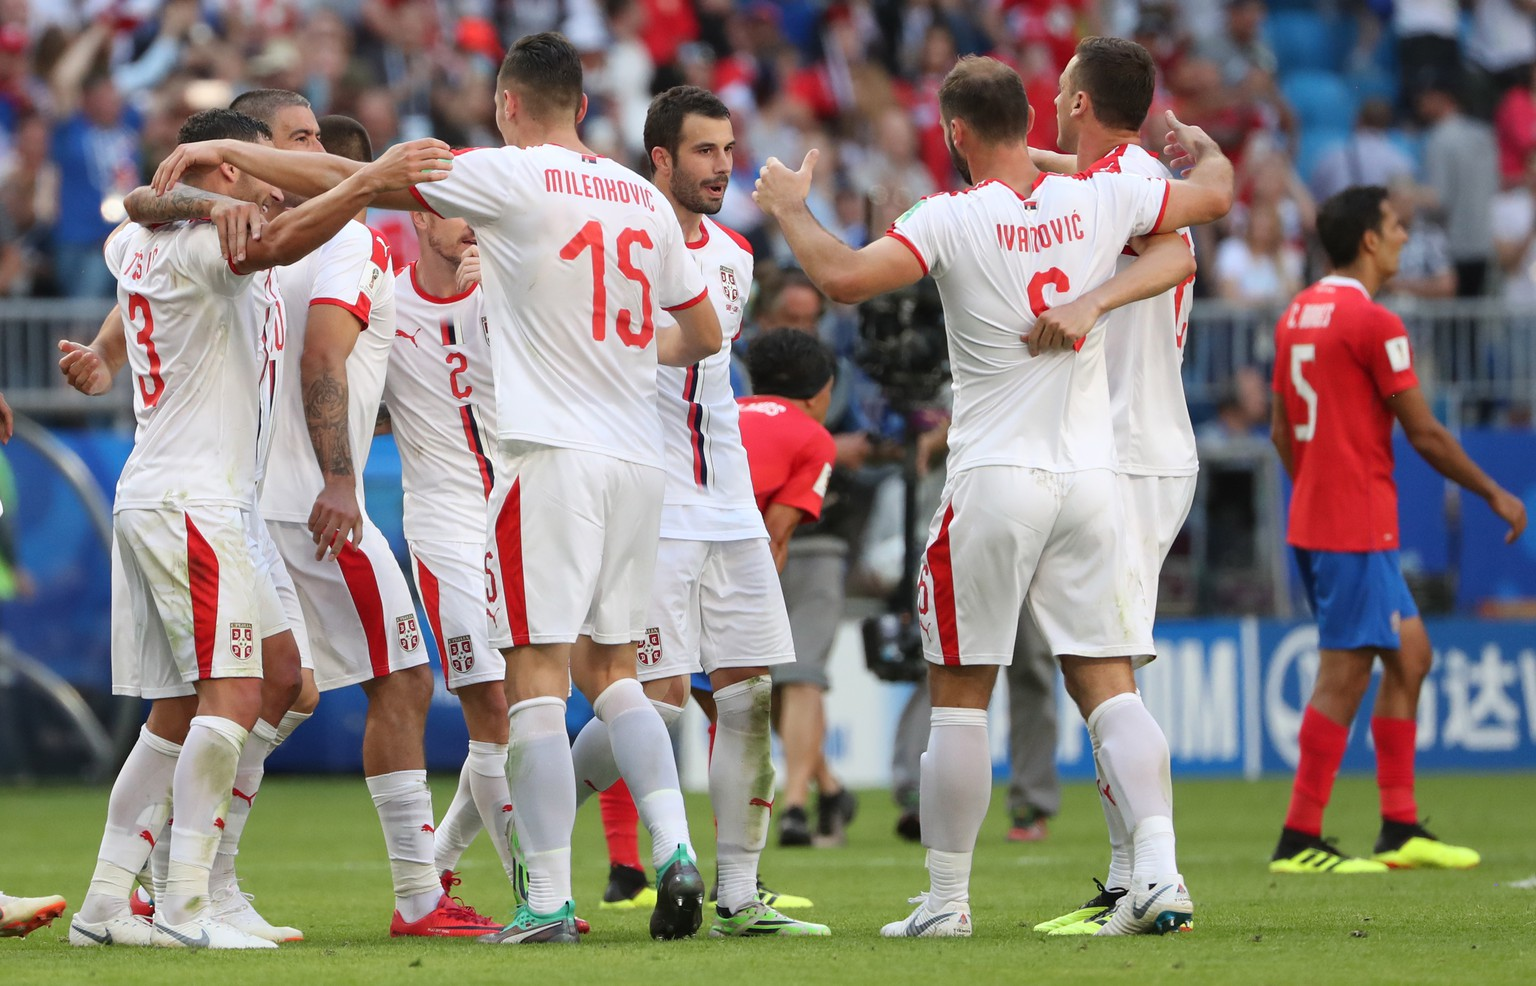 epa06815663 Players of Serbia celebrate after the FIFA World Cup 2018 group E preliminary round soccer match between Costa Rica and Serbia in Samara, Russia, 17 June 2018. Serbia won the match 1-0.